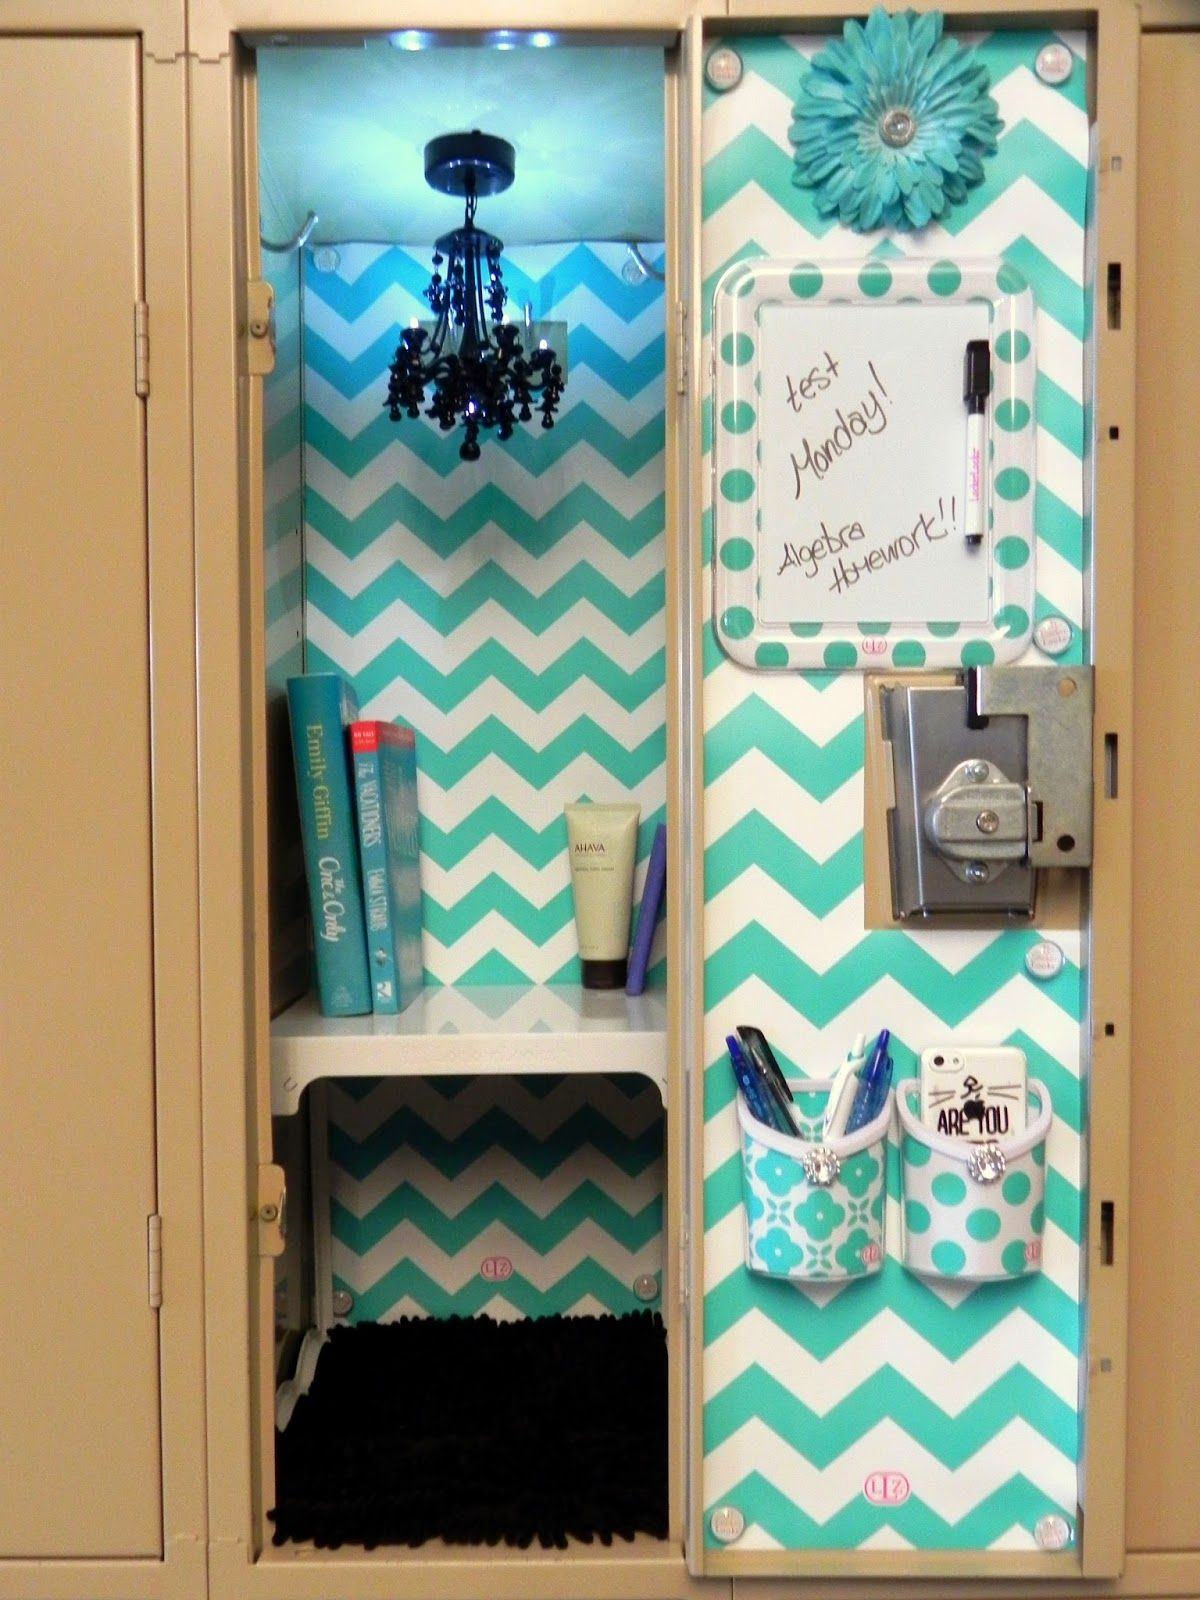 decor locker decorations ideas the latest decorating ideas using a bit of color and accessories quite interesting the fun yet artsy locker decorations ideas